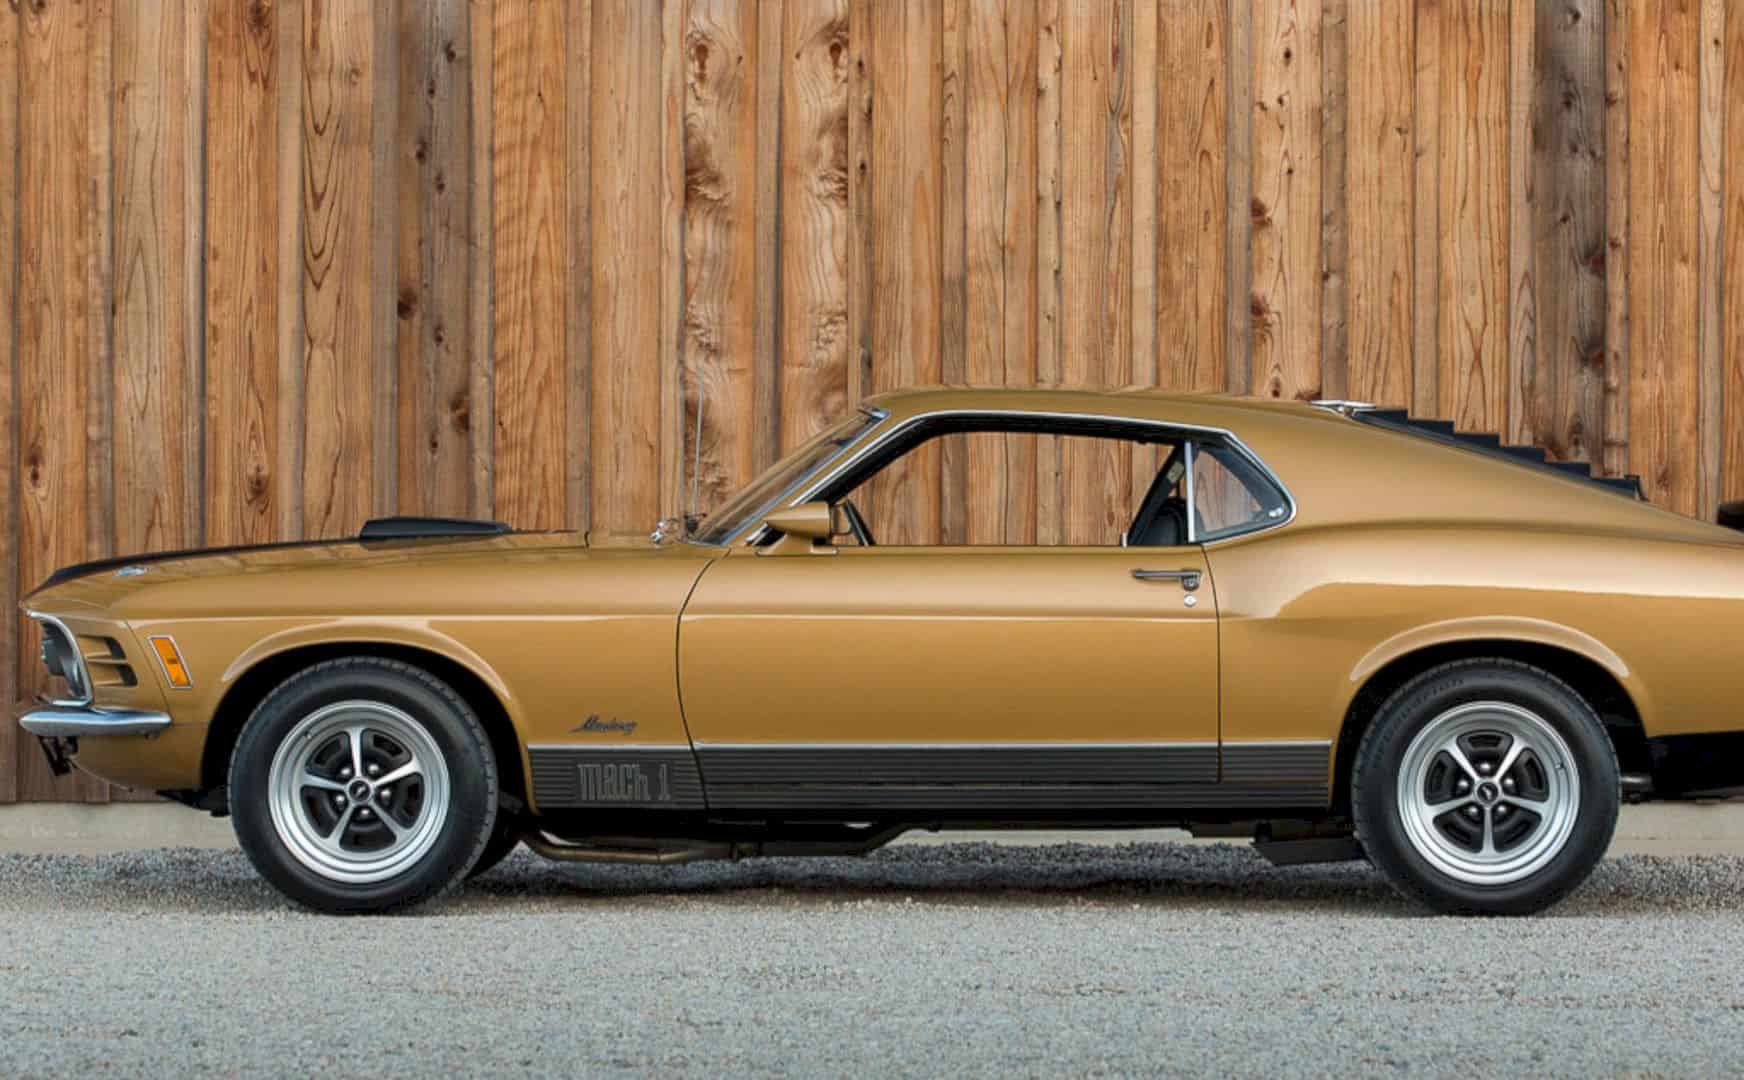 1970 Ford Mustang Mach 1 by Corvette Mike - Rebuilding on The Fame of the Muscle